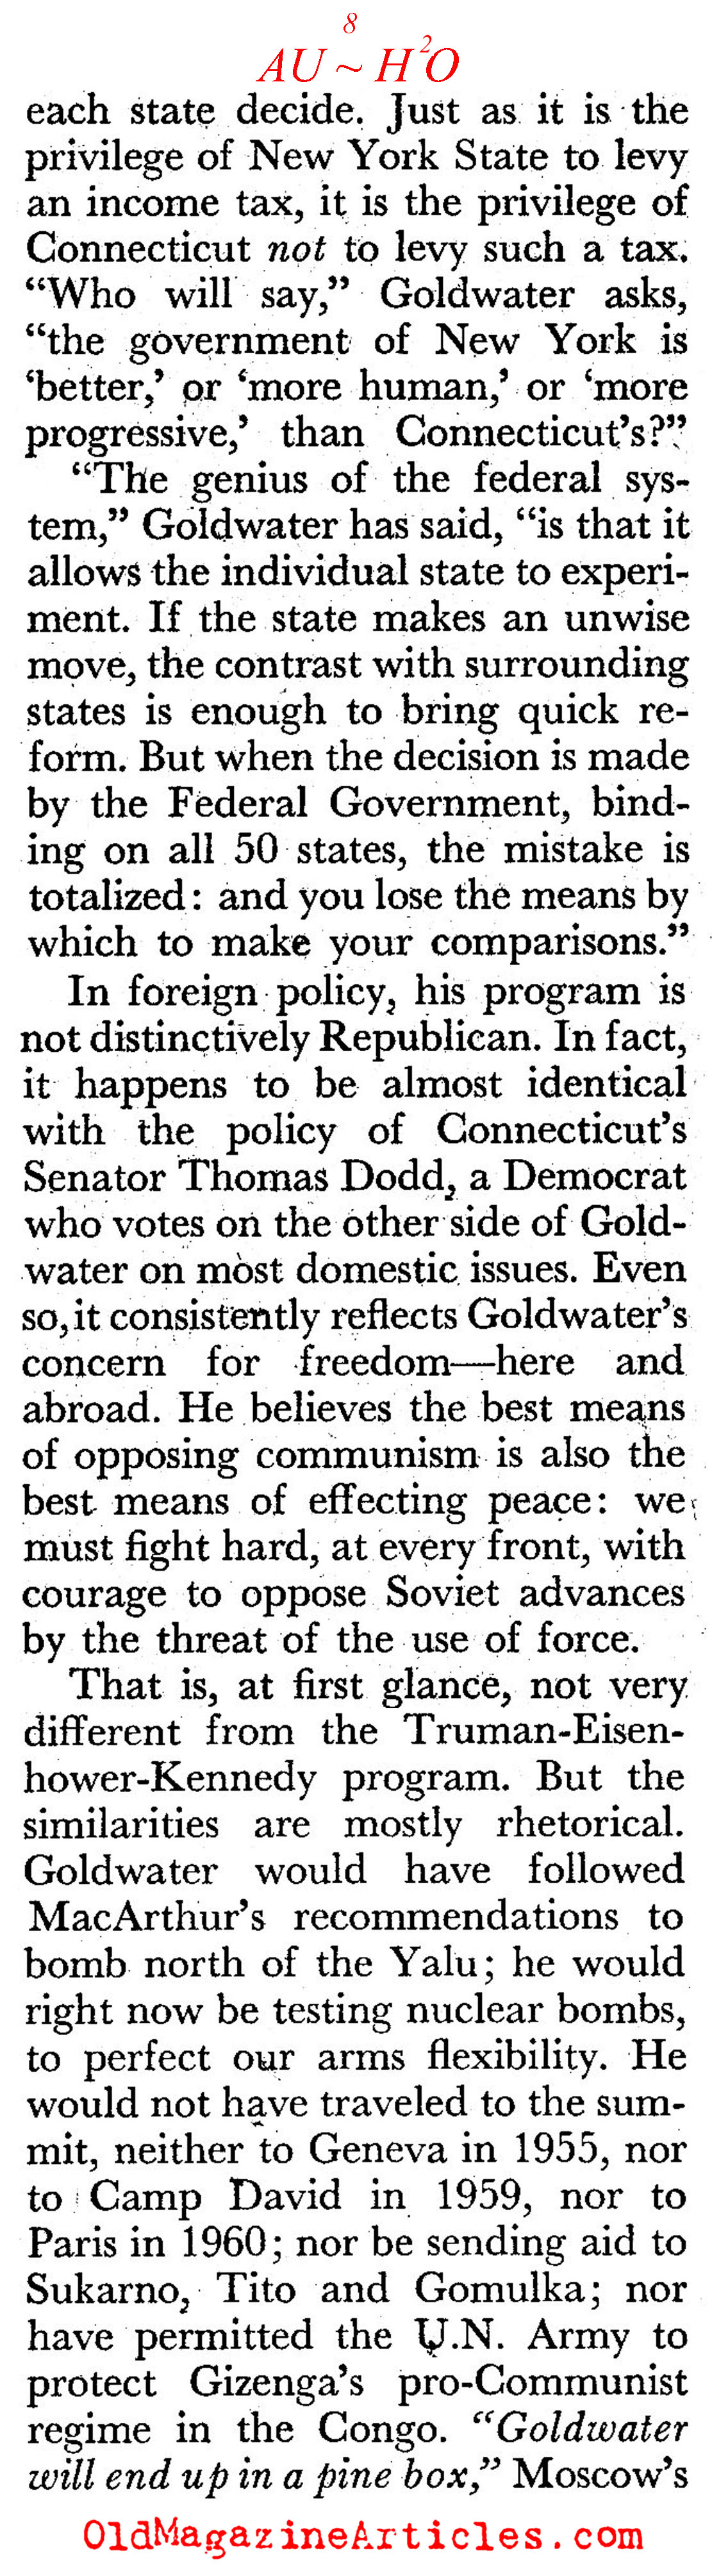 The Father of American Conservativism (Coronet Magazine, 1961)